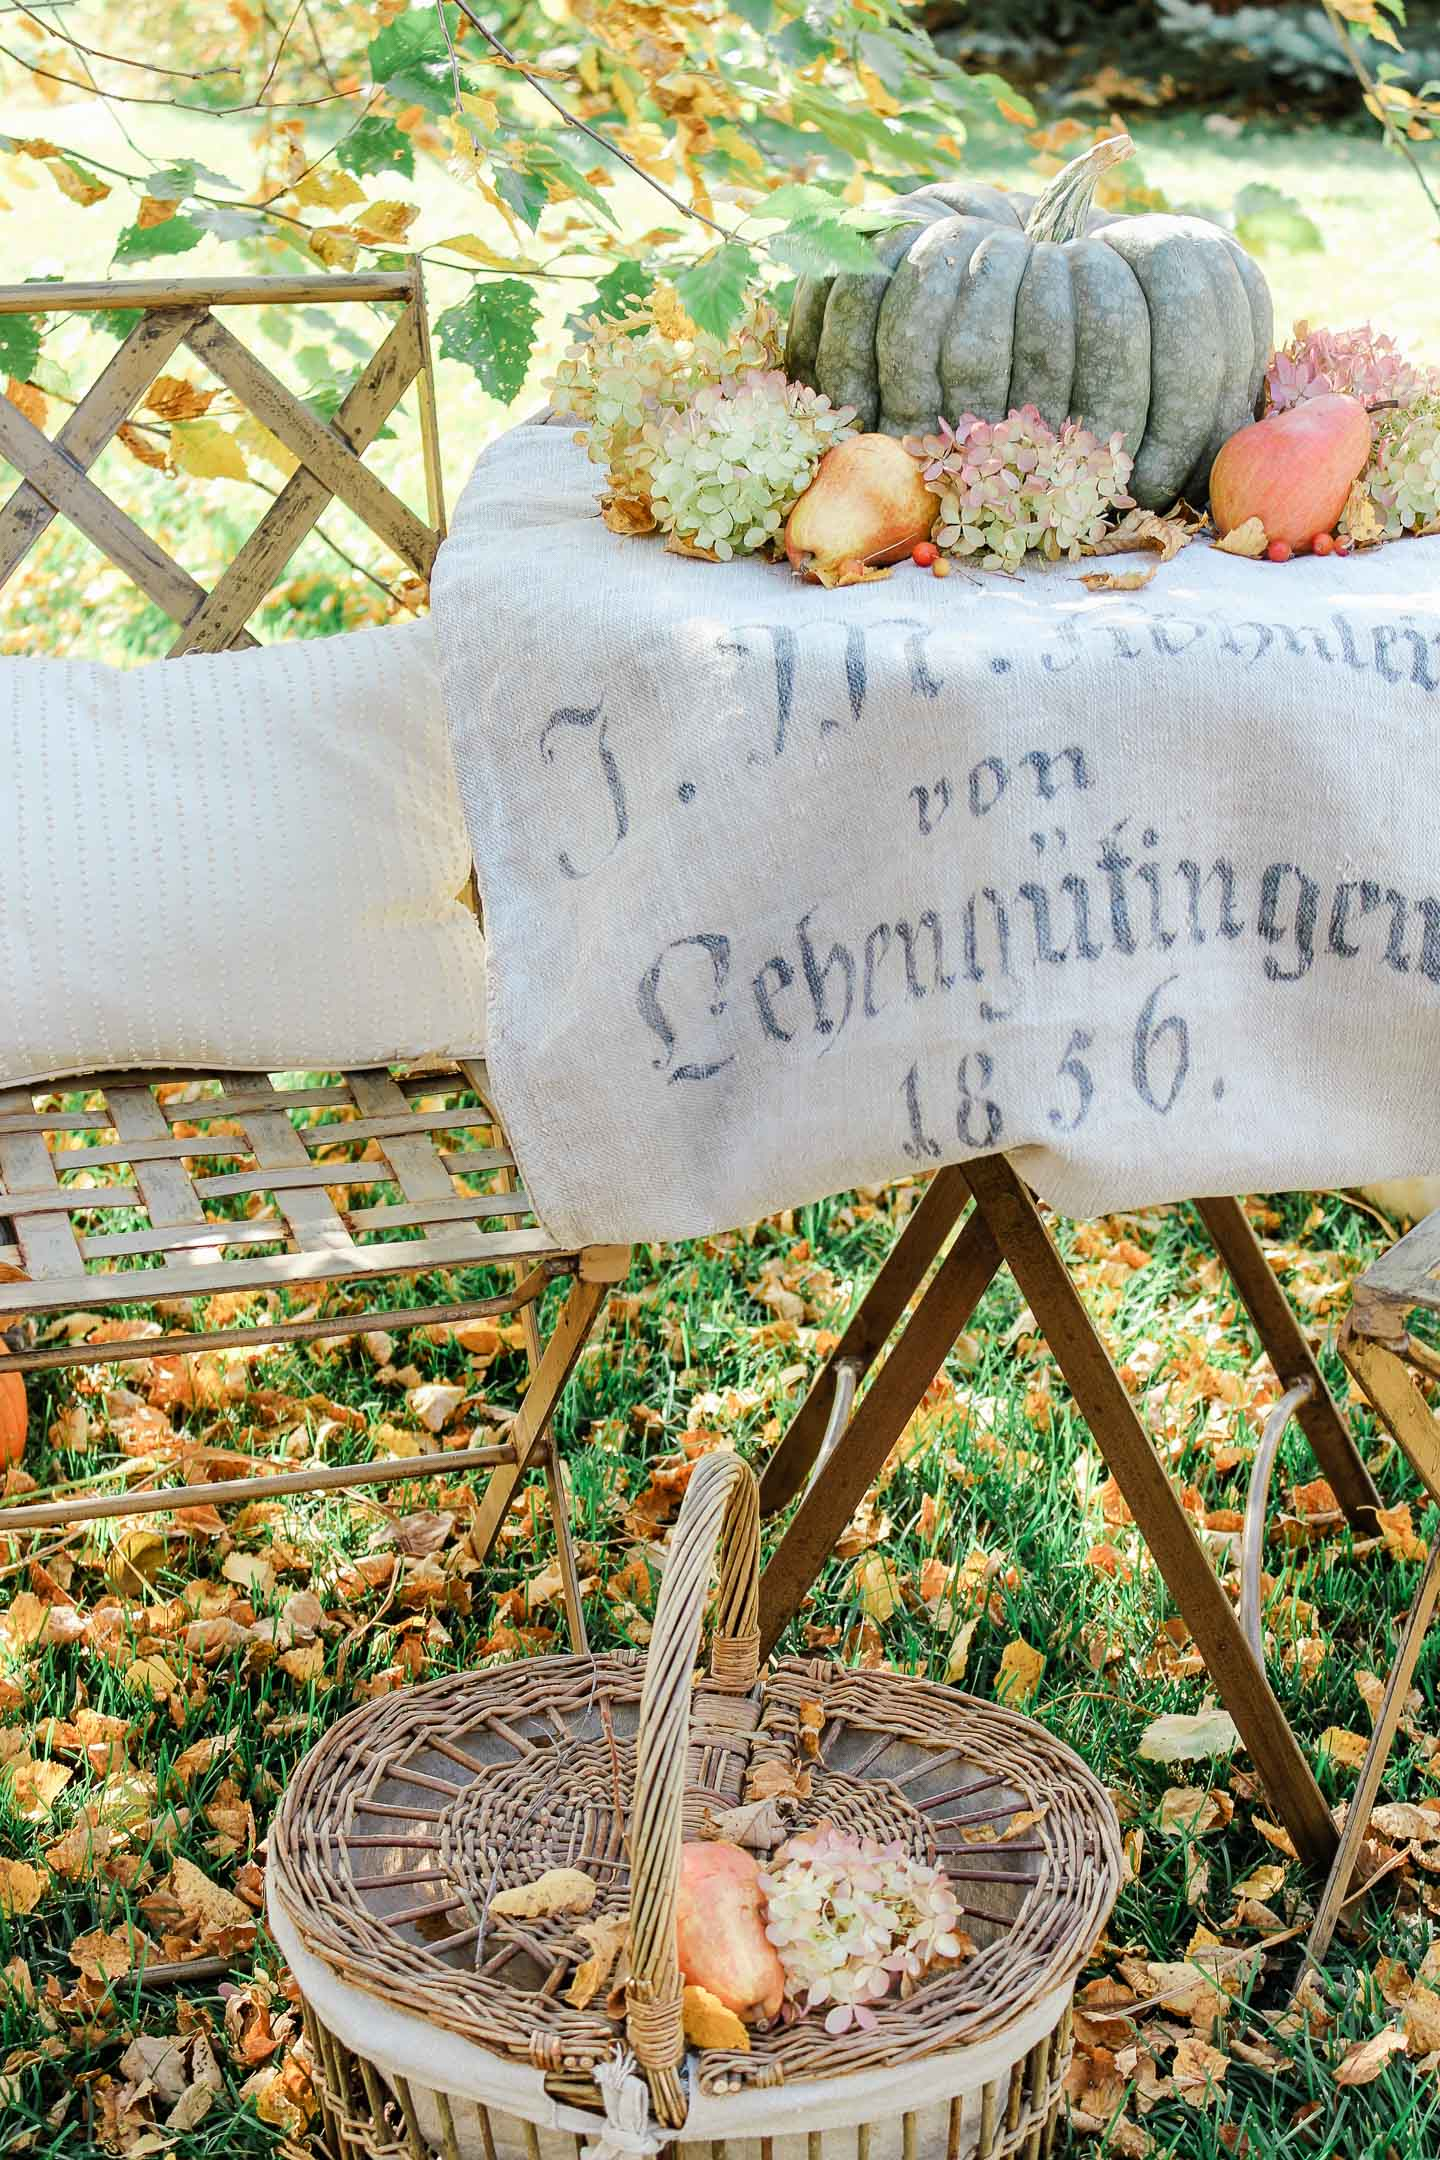 An outdoor table topped with a German grain sack, pumpkin, pears, and hydrangeas.